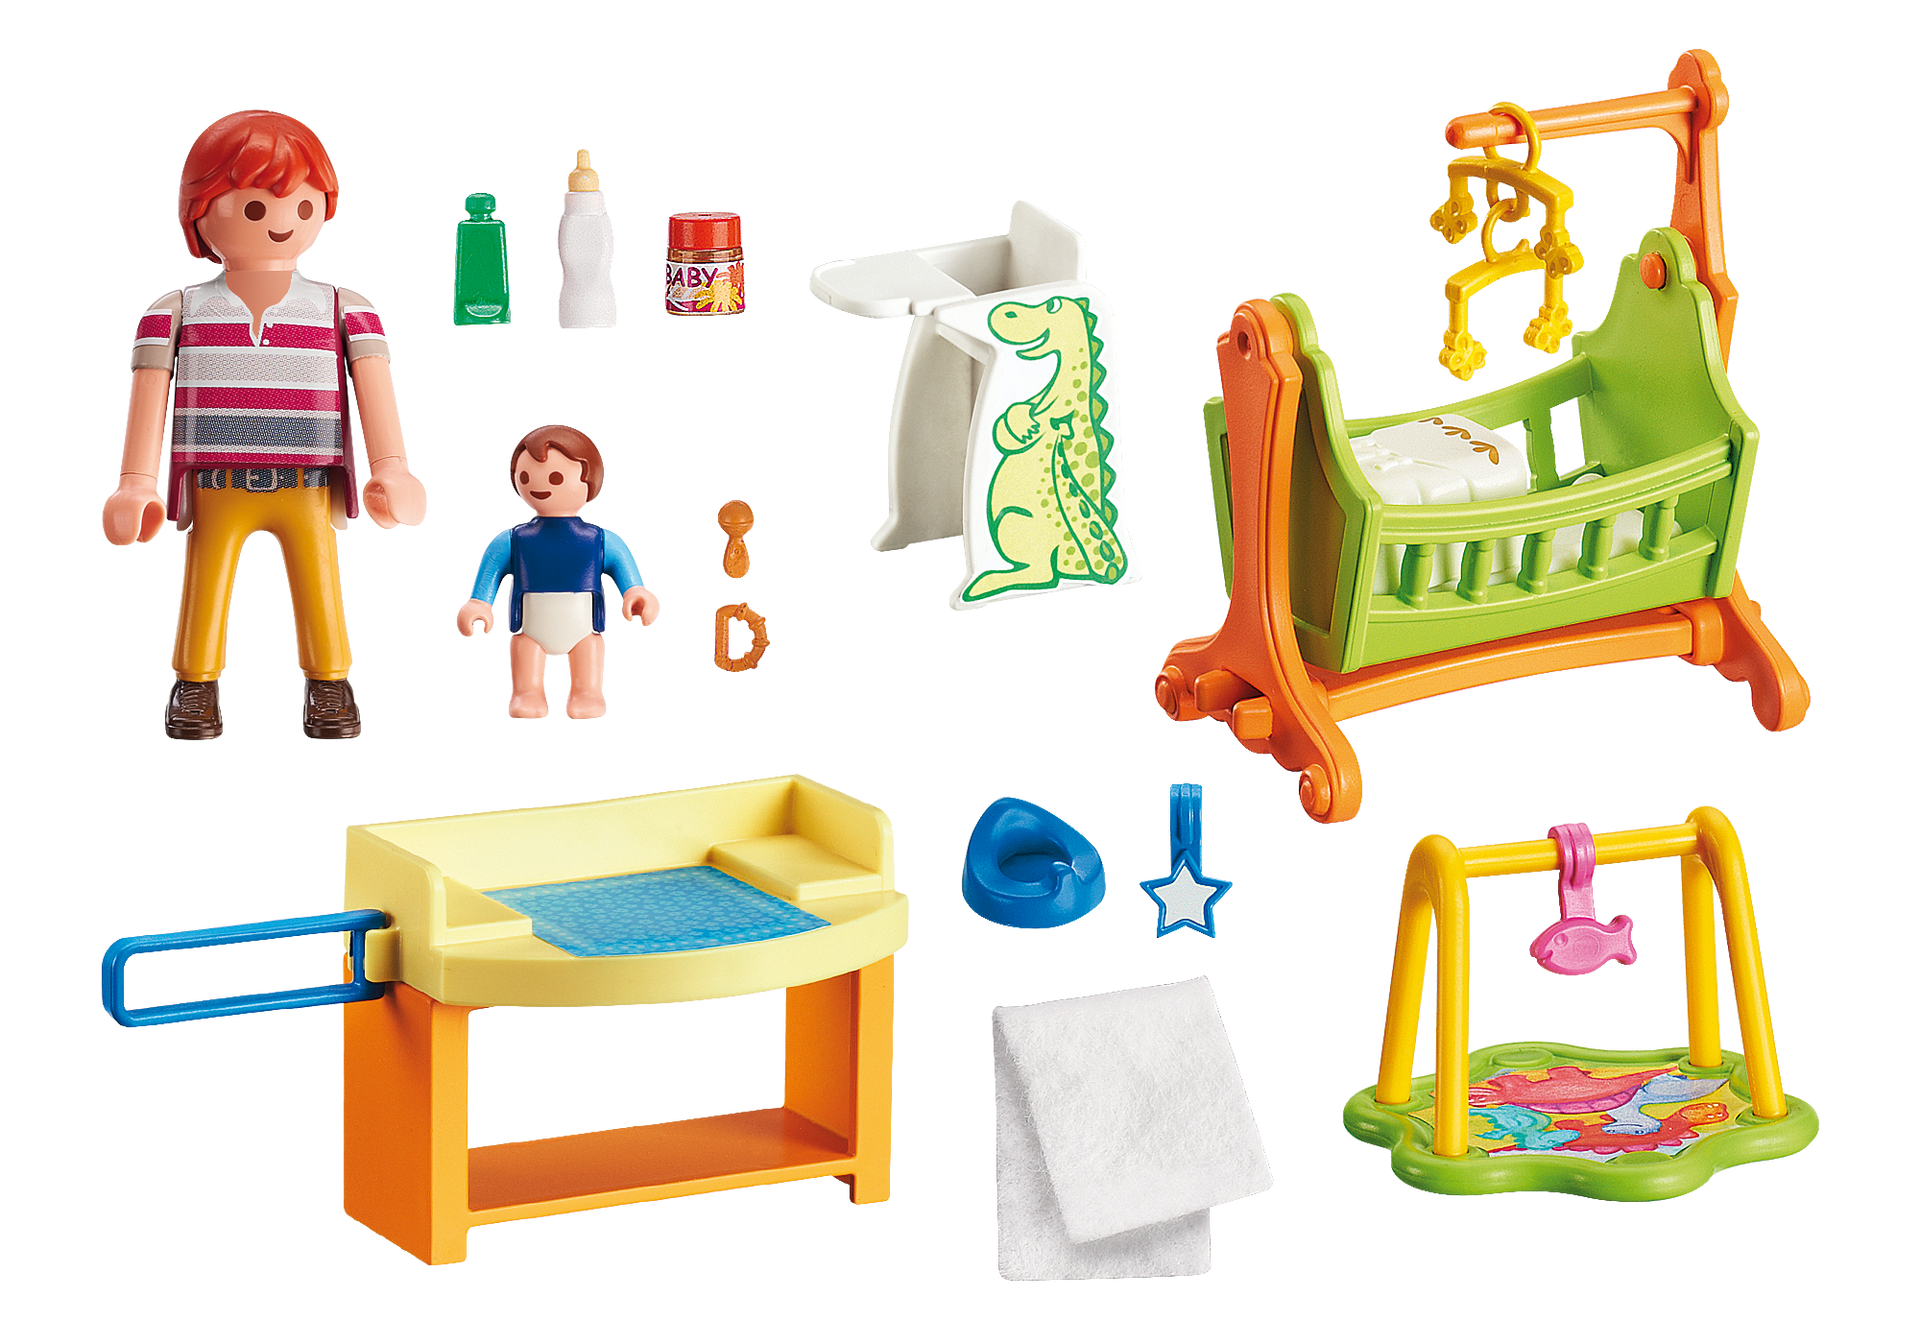 Room clipart dollhouse. Baby with cradle playmobil